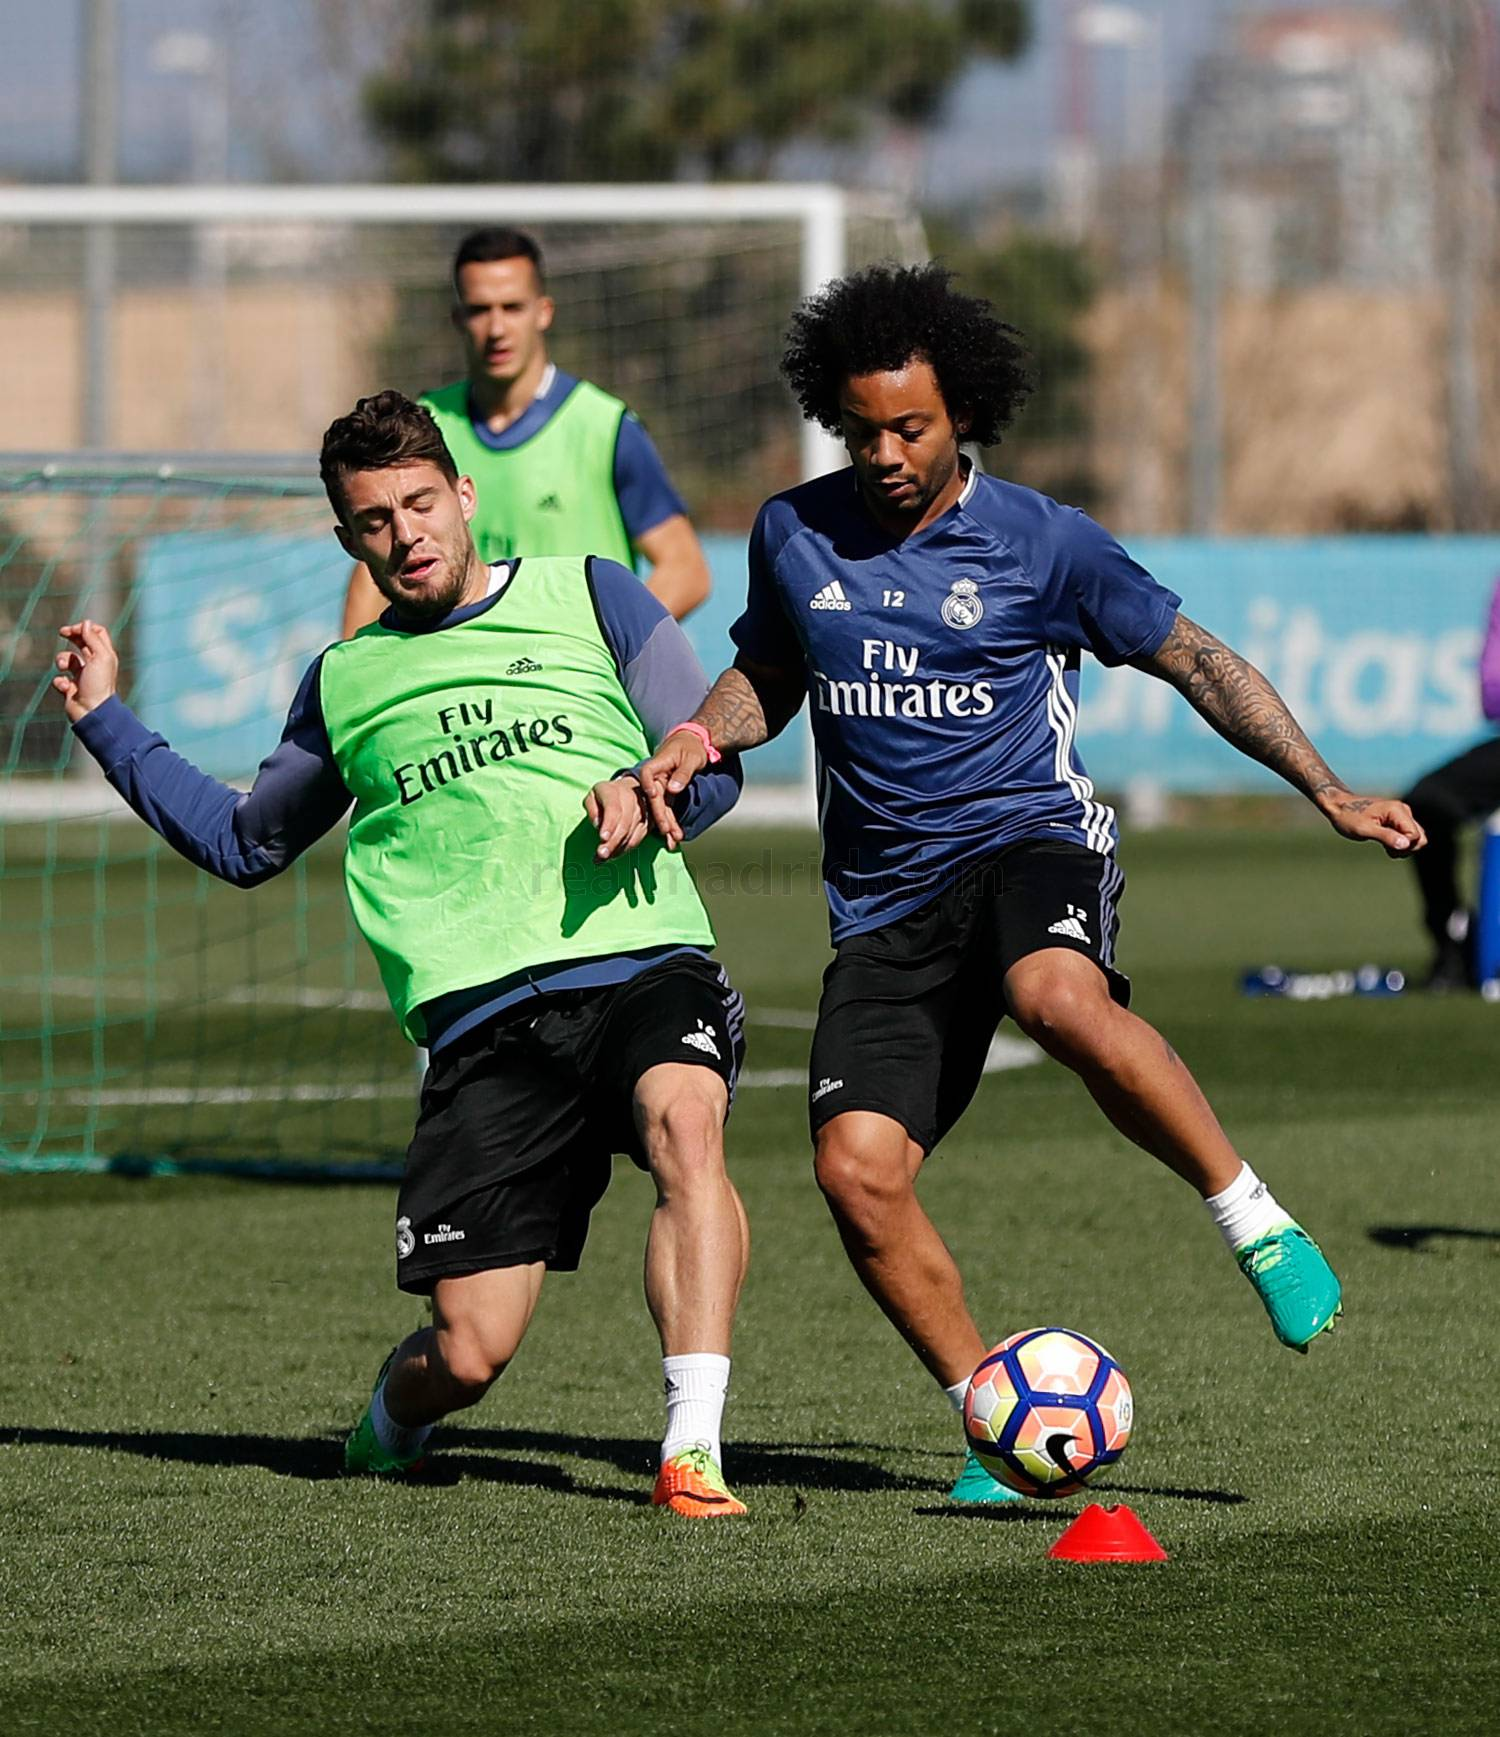 Real Madrid - Entrenamiento del Real Madrid - 16-03-2017